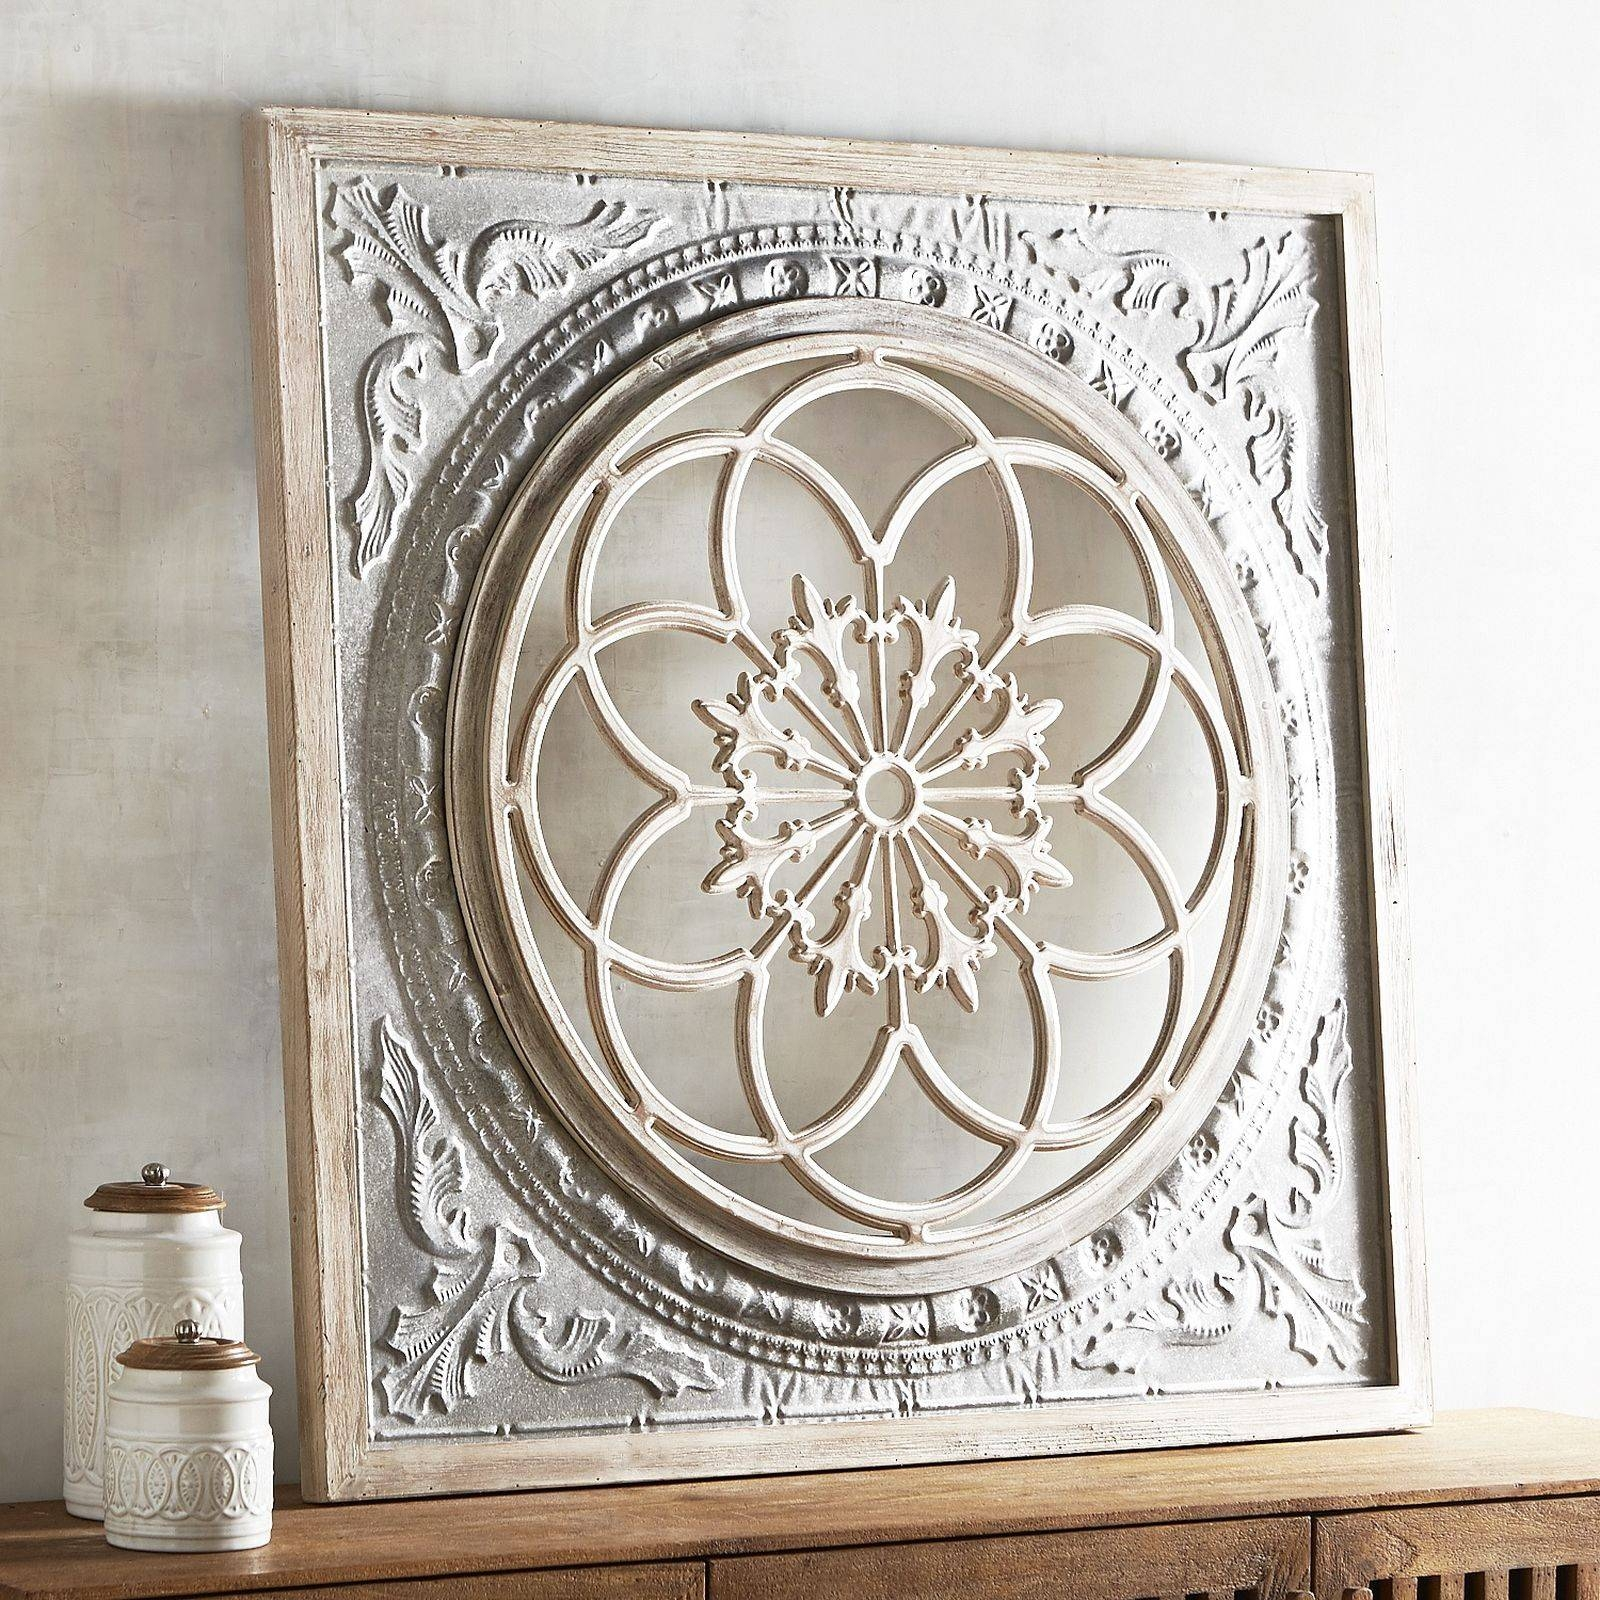 Wall Art Designs: Tin Wall Art Galvanized Medallion Wall Decor Within Latest Square Metal Wall Art (View 14 of 20)